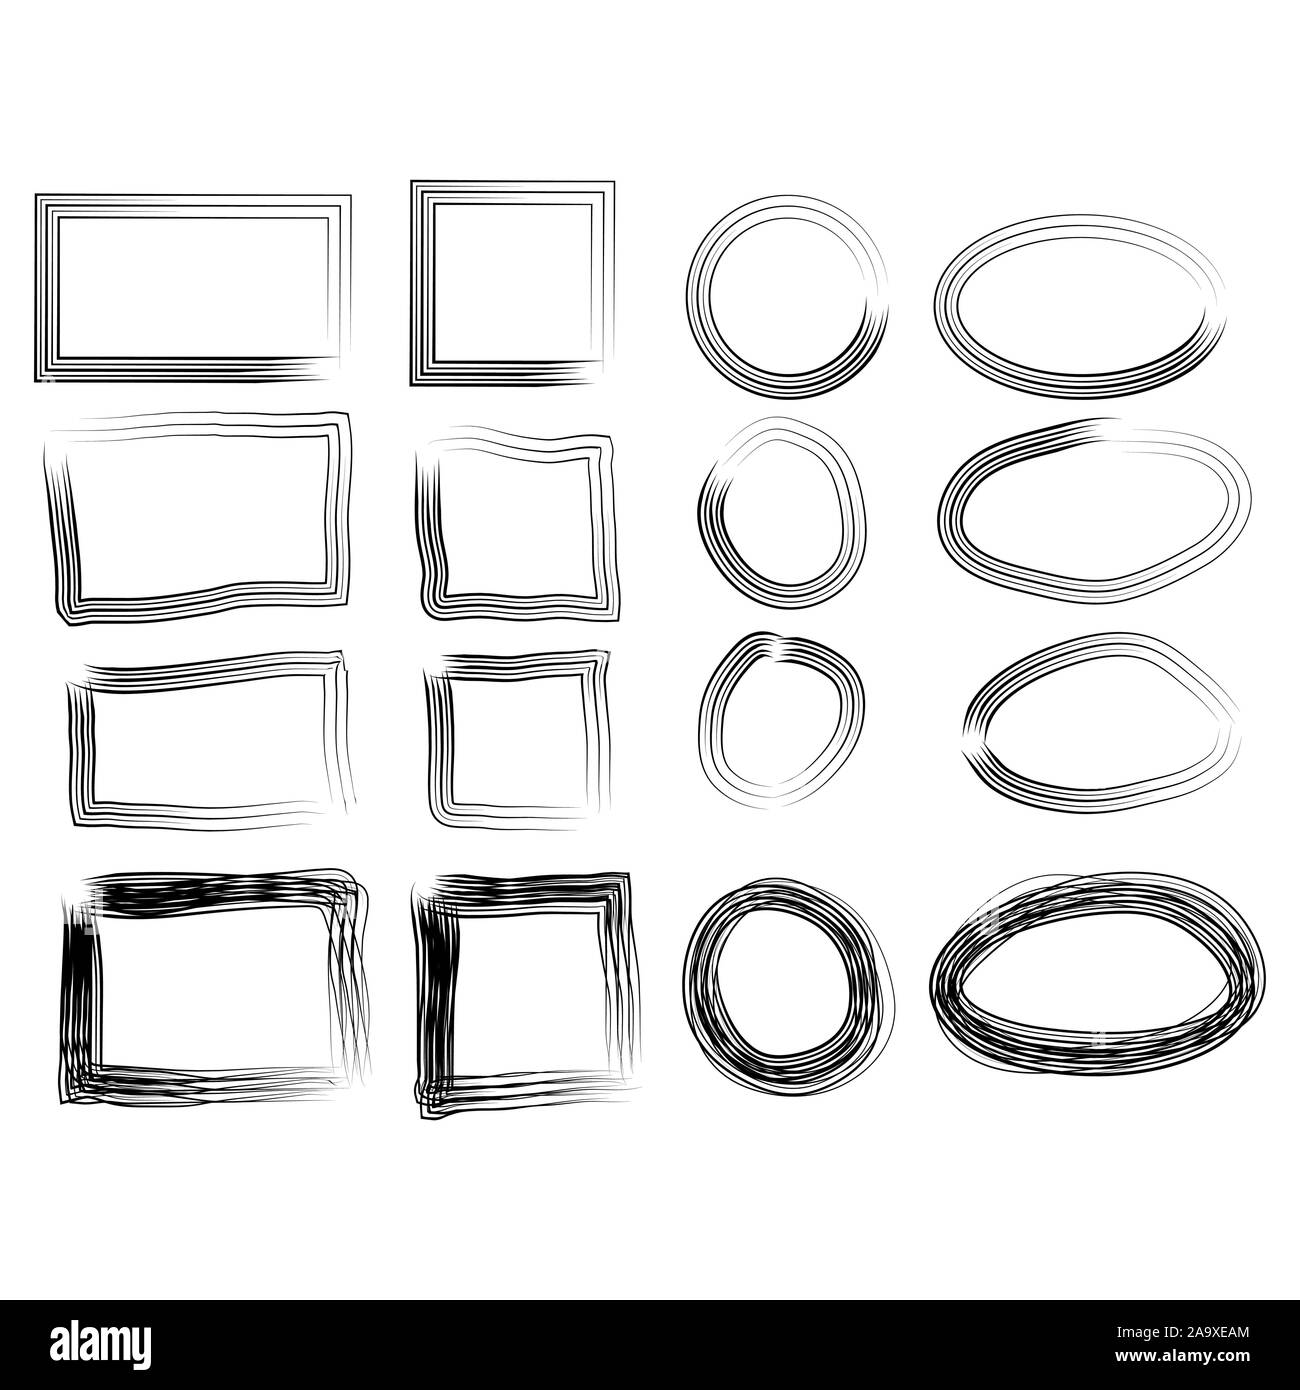 Frames in doodle style. Set of Square, rectangle, circle, oval handdrawn borders. Stock Vector